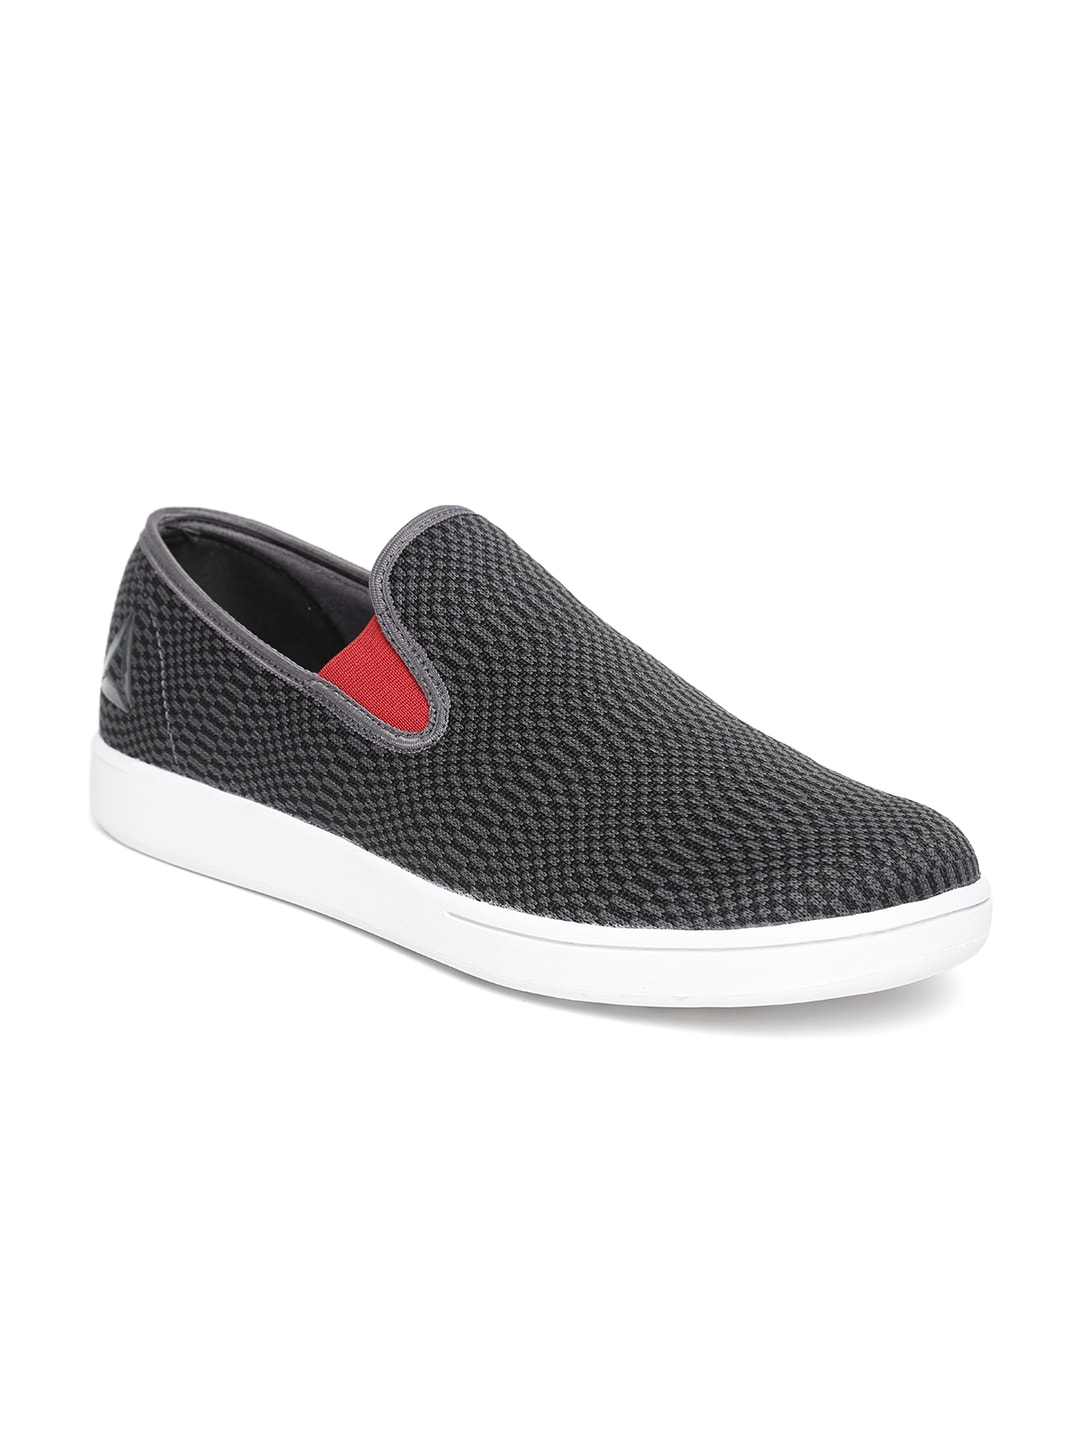 976321a802e2 Reebok Casual Shoes - Buy Reebok Casual Shoes Online in India